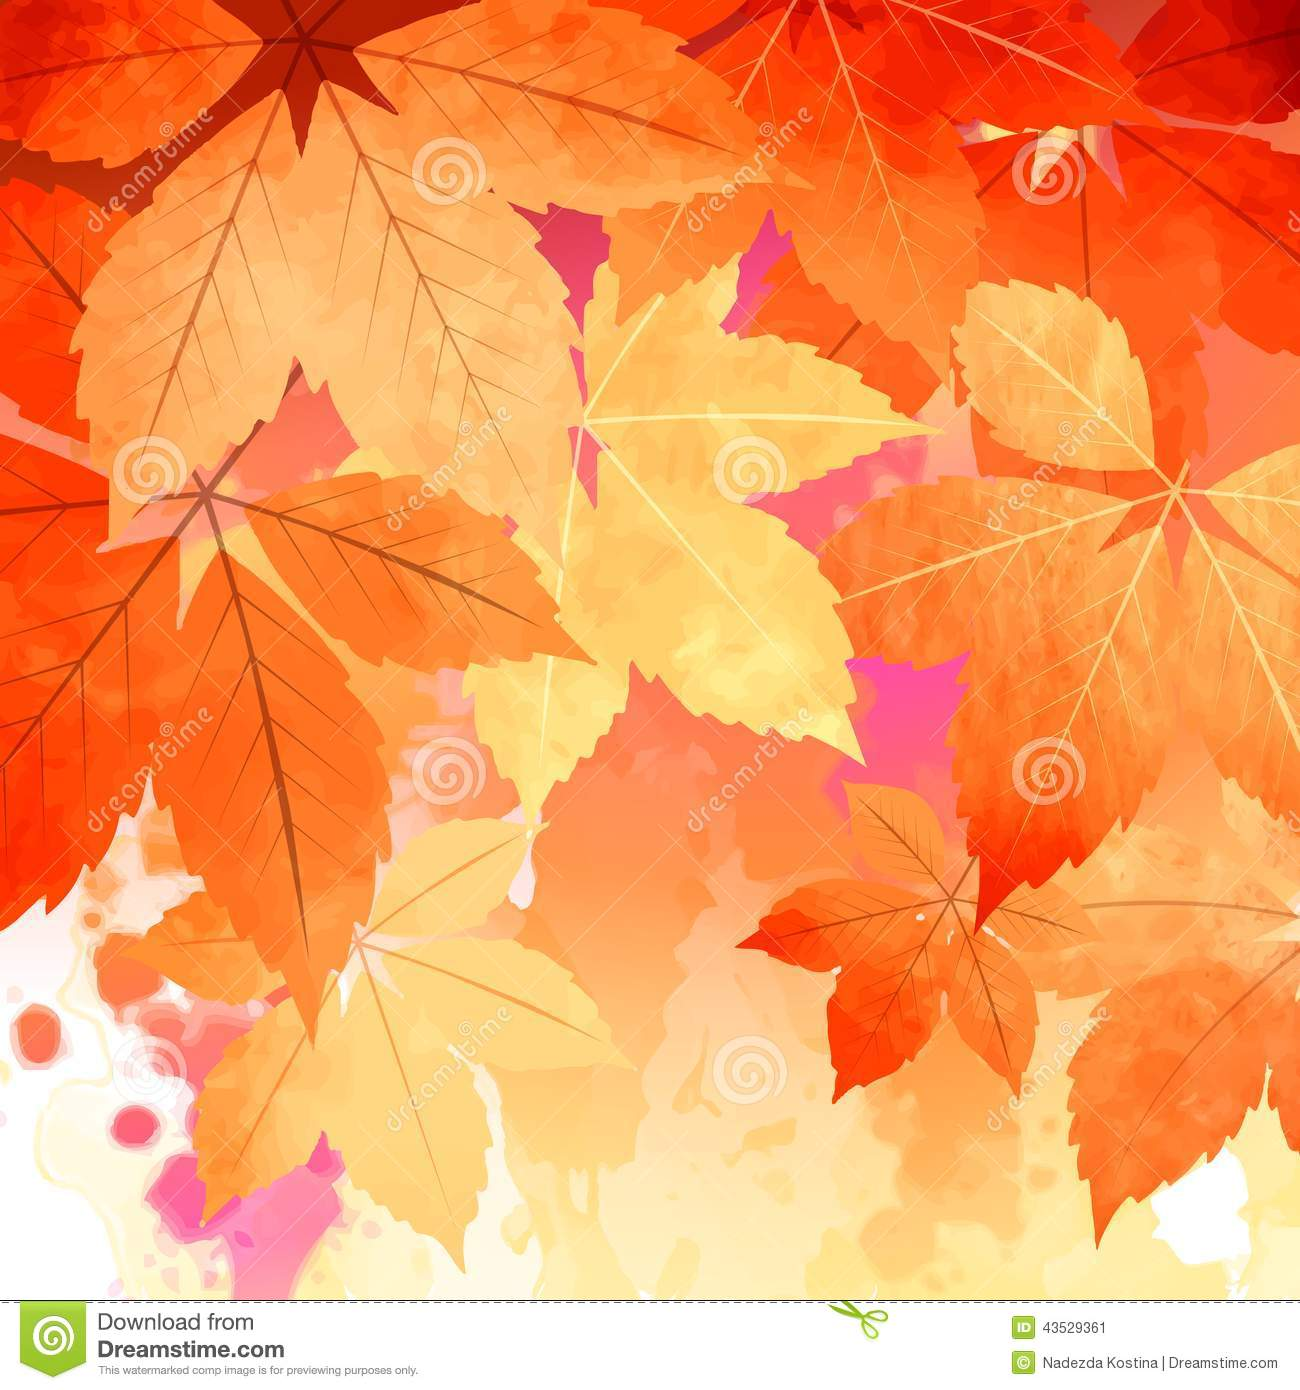 Autumn Vector Watercolor Fall Leaves Stock Vector